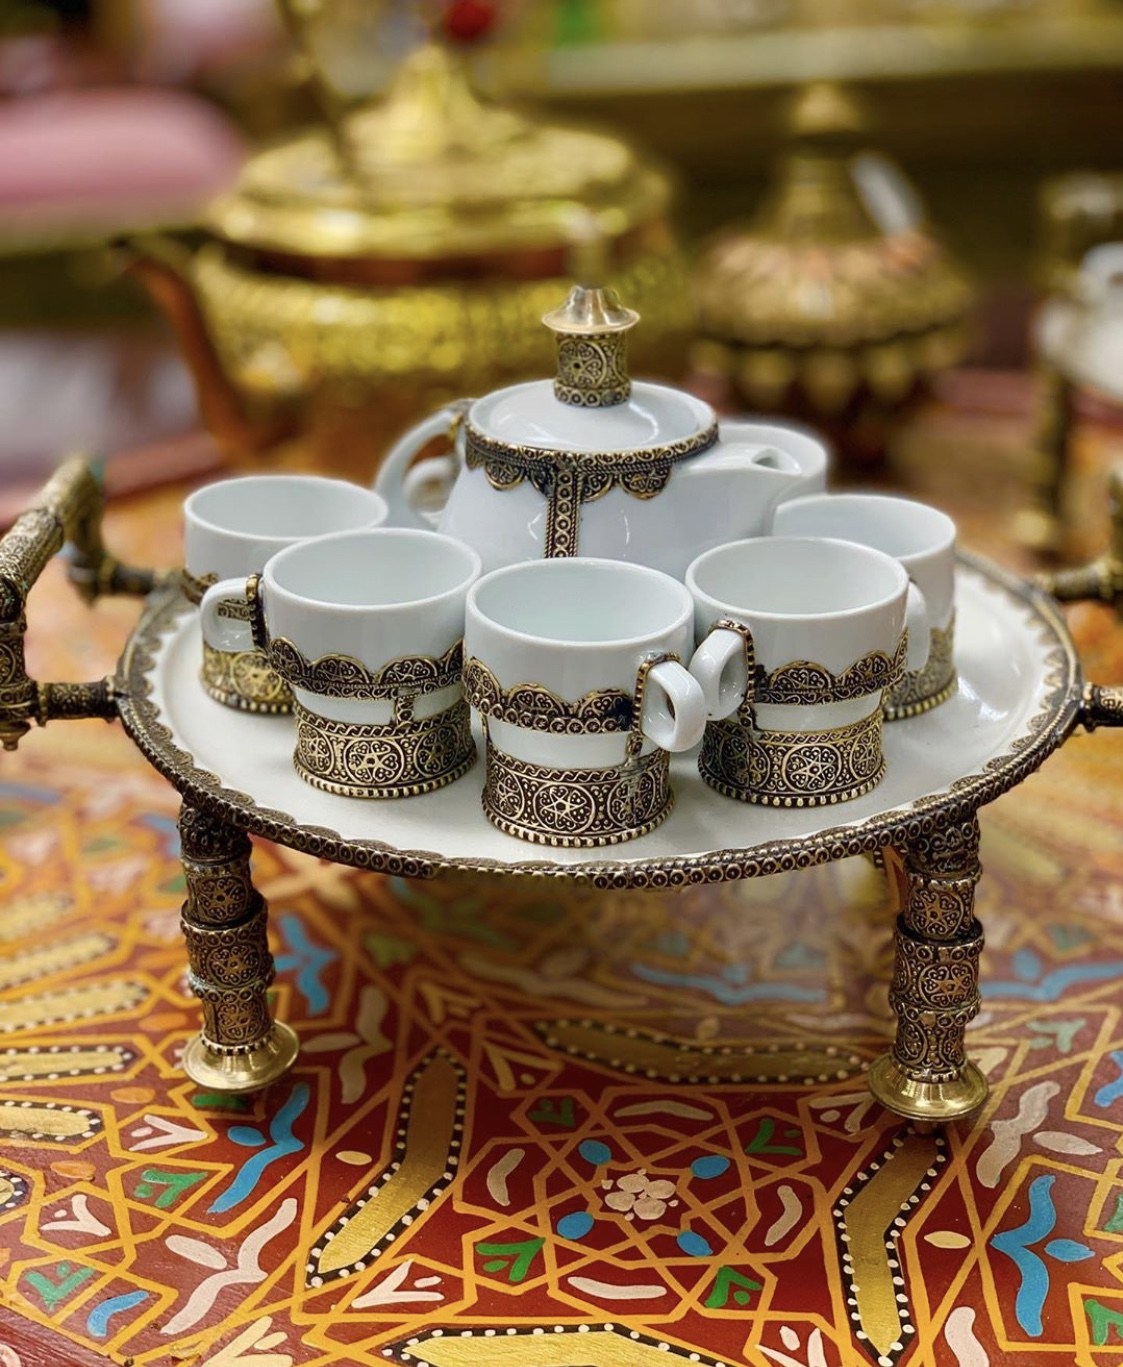 moroccan-handmade-ceramic-tea-cup-set-26-tg047.jpeg